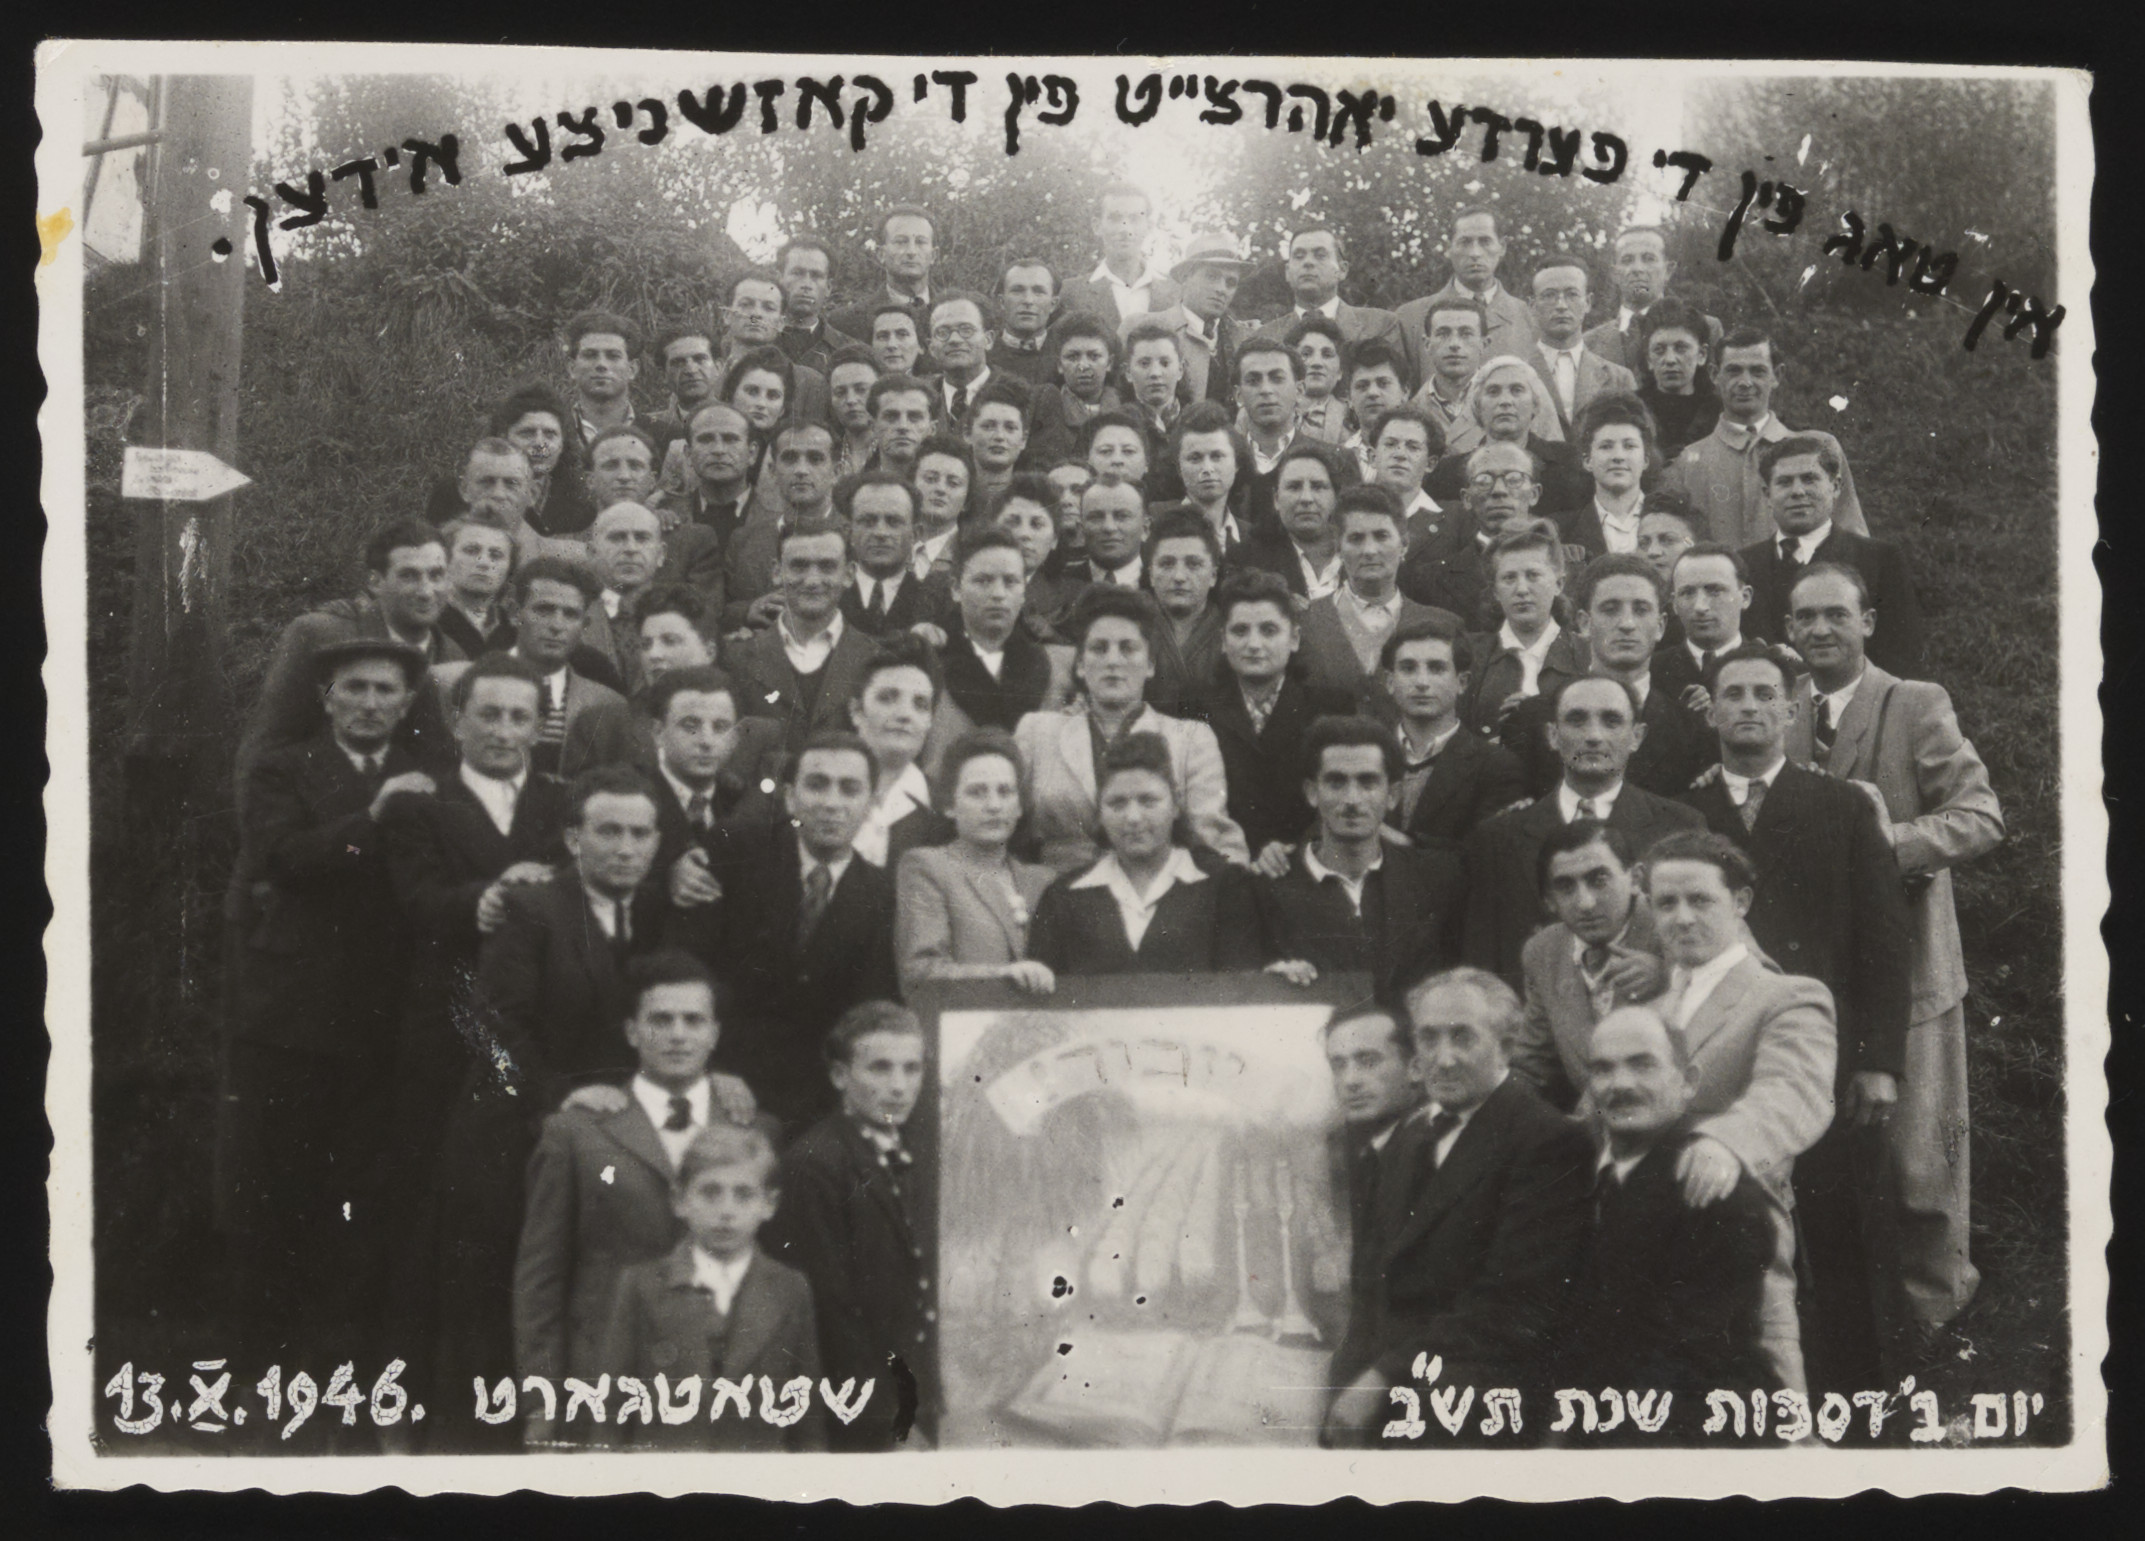 Survivors gather at the Stuttgart displaced persons camp to commemorate the fourth anniversary of the destruction of the Jewish community of Kozienice, Poland.  Laja Tenenbaum is pictured third row from the top, second from the right.  Also pictured is Zelda (Goldberg) Friedman, holding the Yizkor photo (woman on left).  Standing next to Zelda is Tsesha Eisenberg, a relative of Zelda's  from Kozienice.  Zelda was in Stuttgart, after the war and after marrying Yitskhak (Issak) Friedman, they made alliyah to British mandatory Palestine.